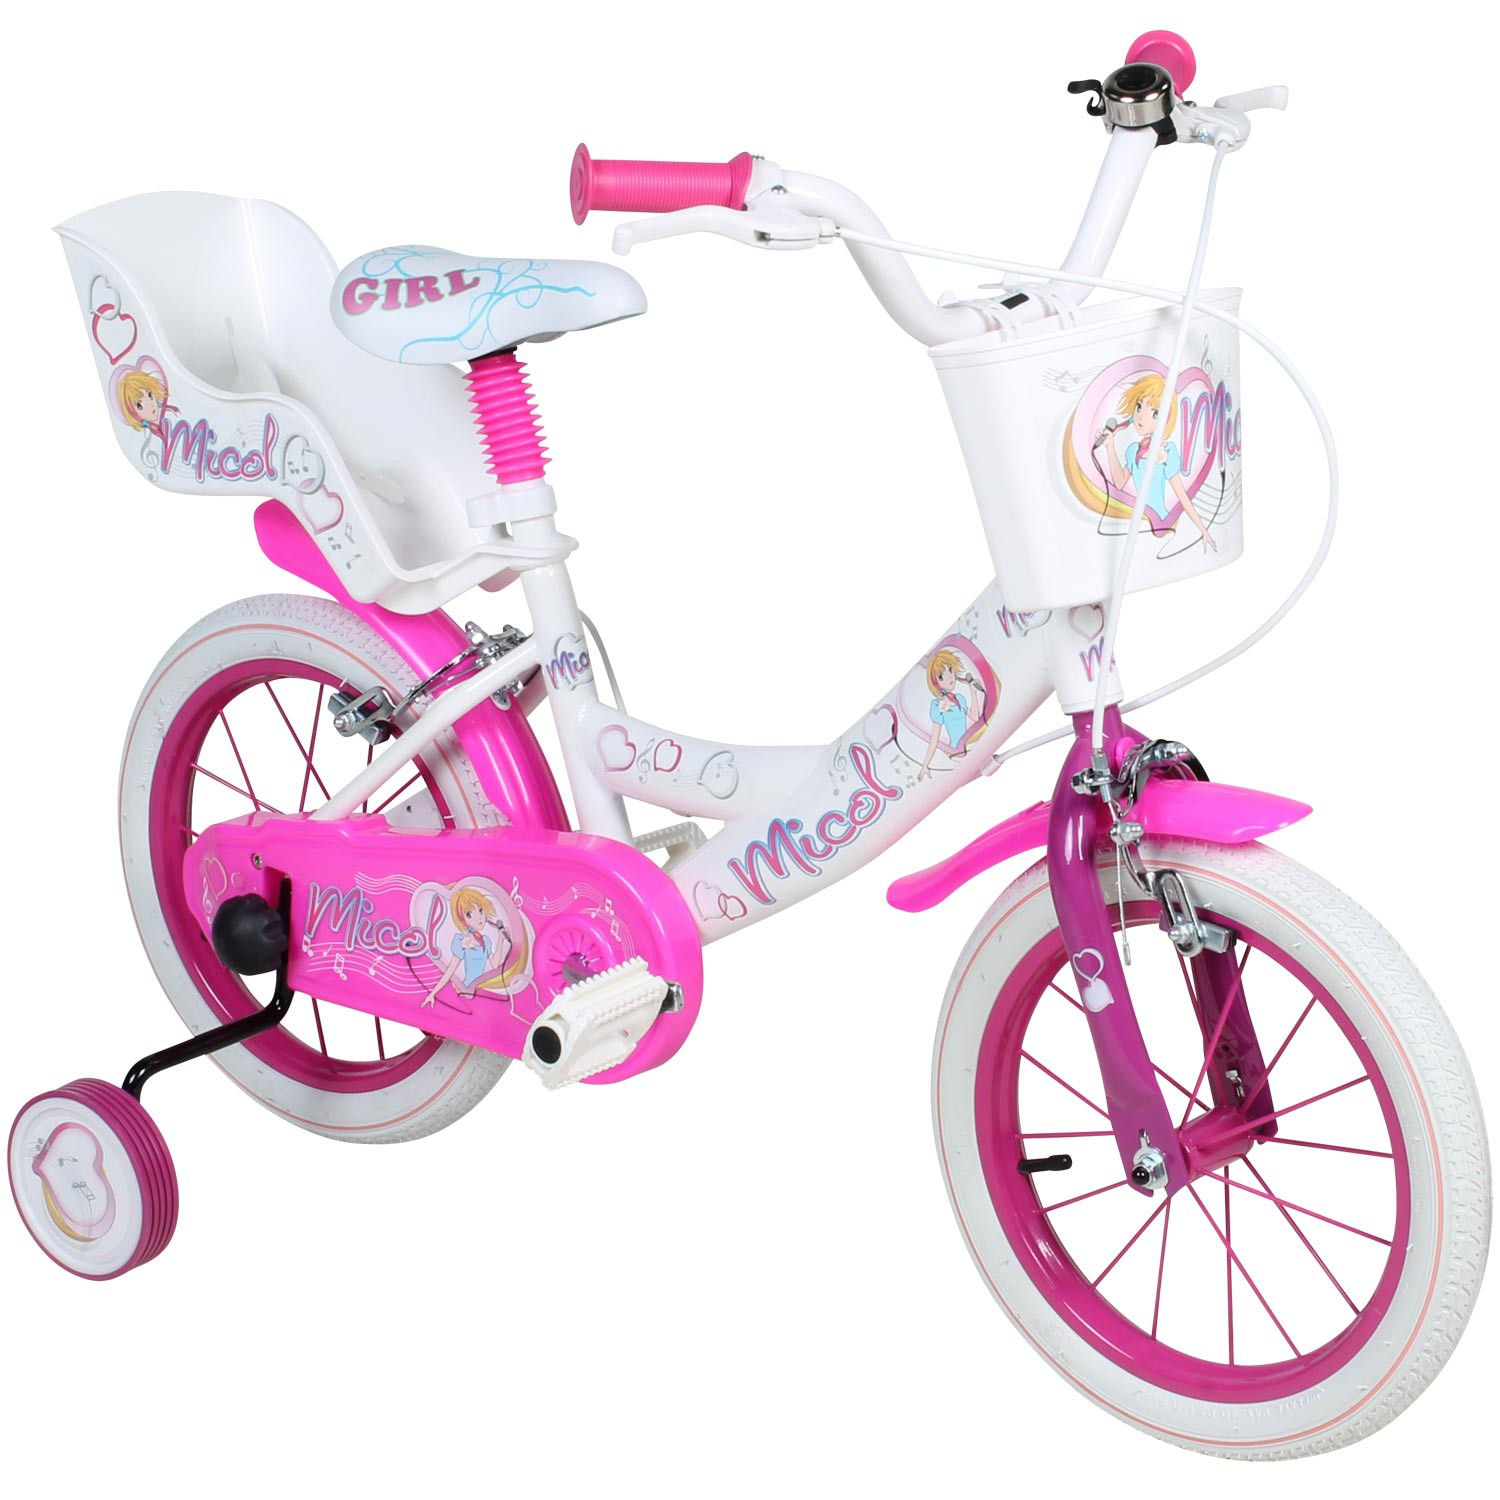 kinderfahrrad 14 zoll micol fahrrad kleinkind kids bike. Black Bedroom Furniture Sets. Home Design Ideas